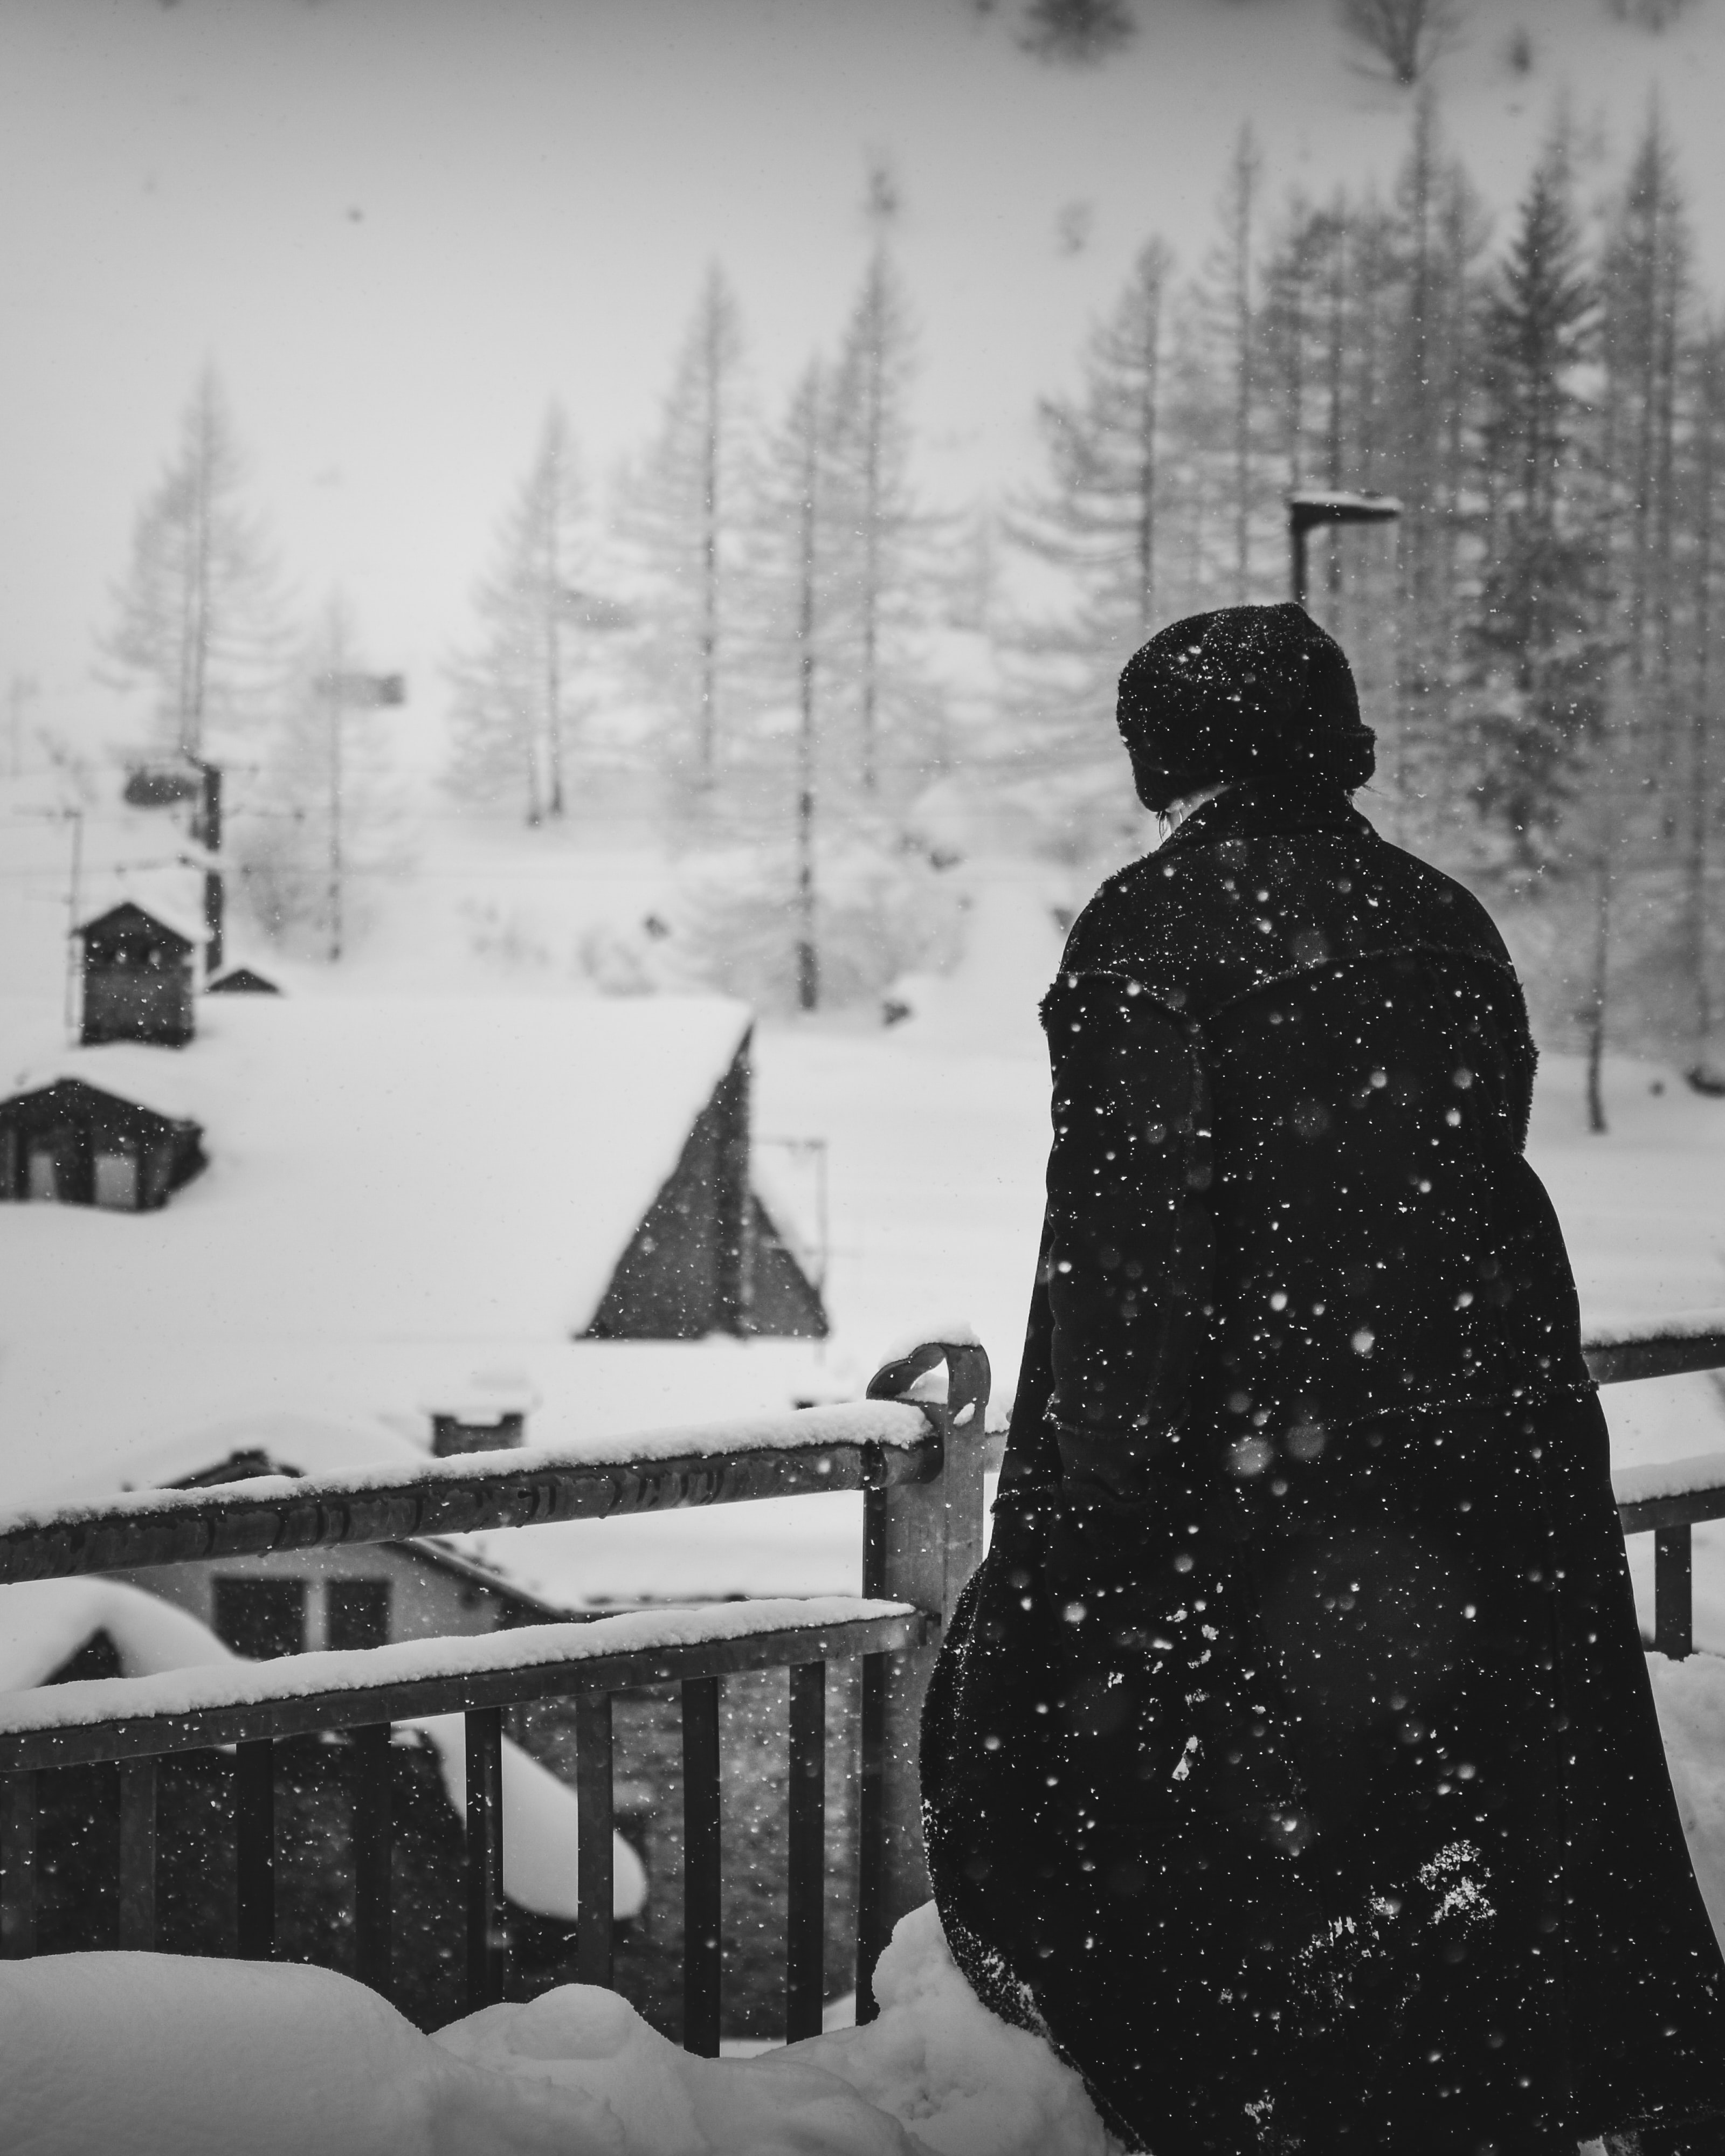 person standing near snow coated houses